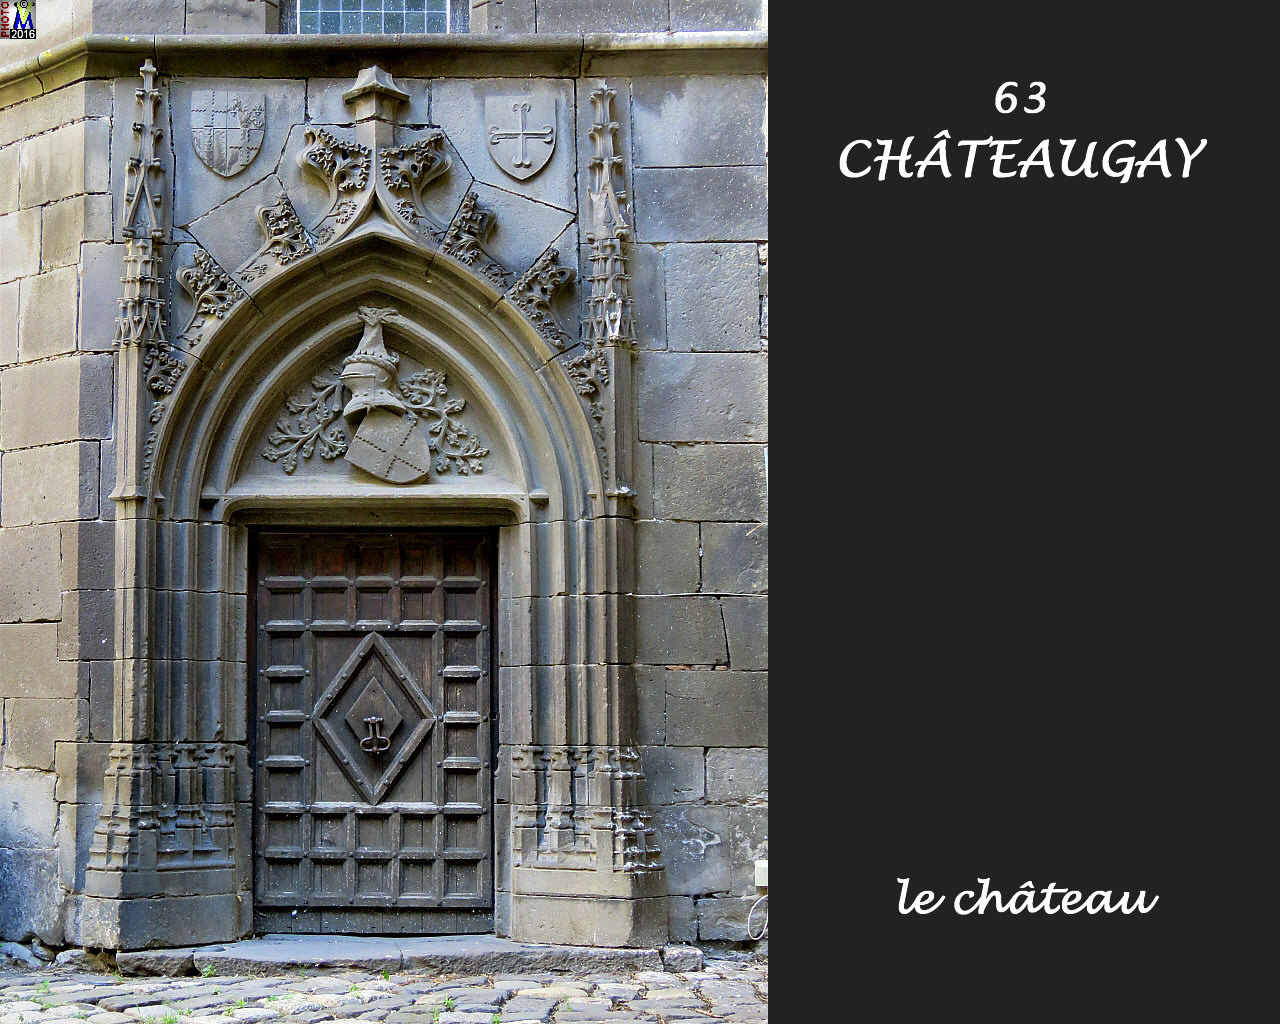 63CHATEAUGAY_chateau_118.jpg